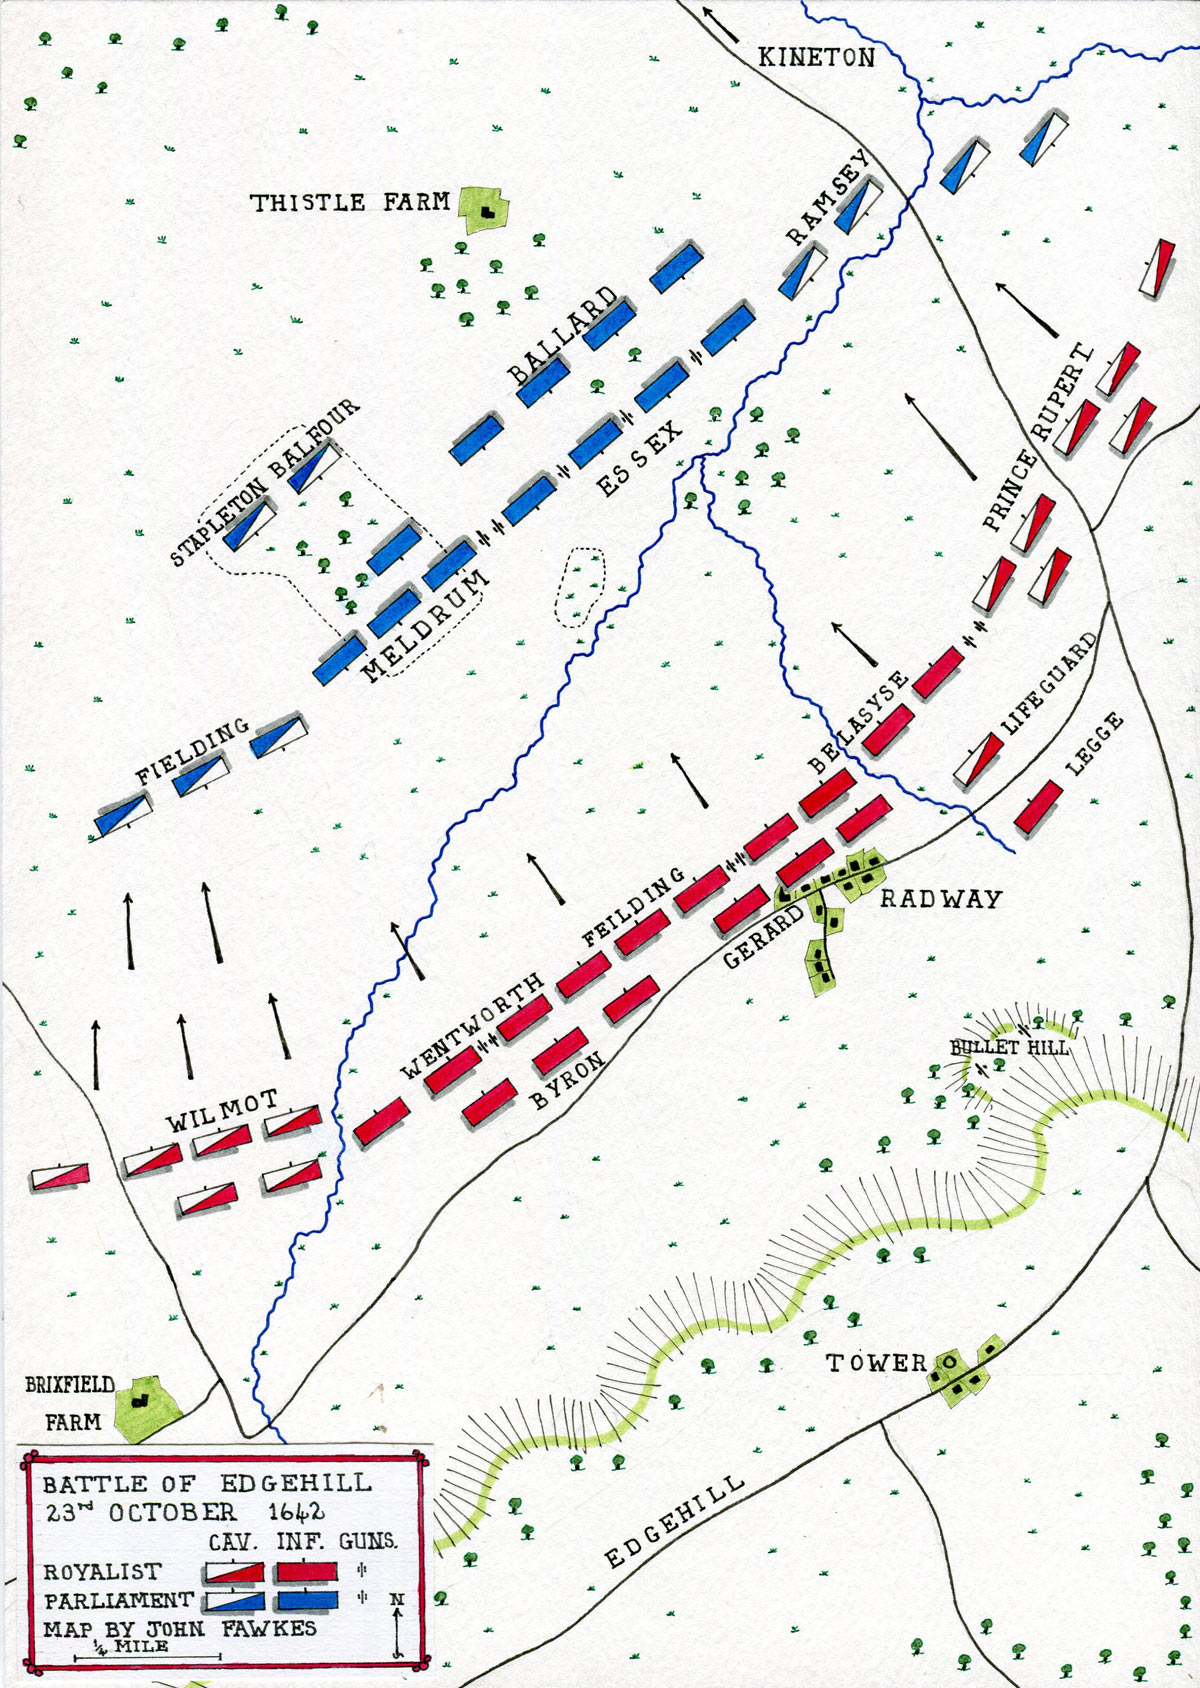 Map of the Battle of Edgehill on 23rd October 1642 in the English Civil War: map by John Fawkes